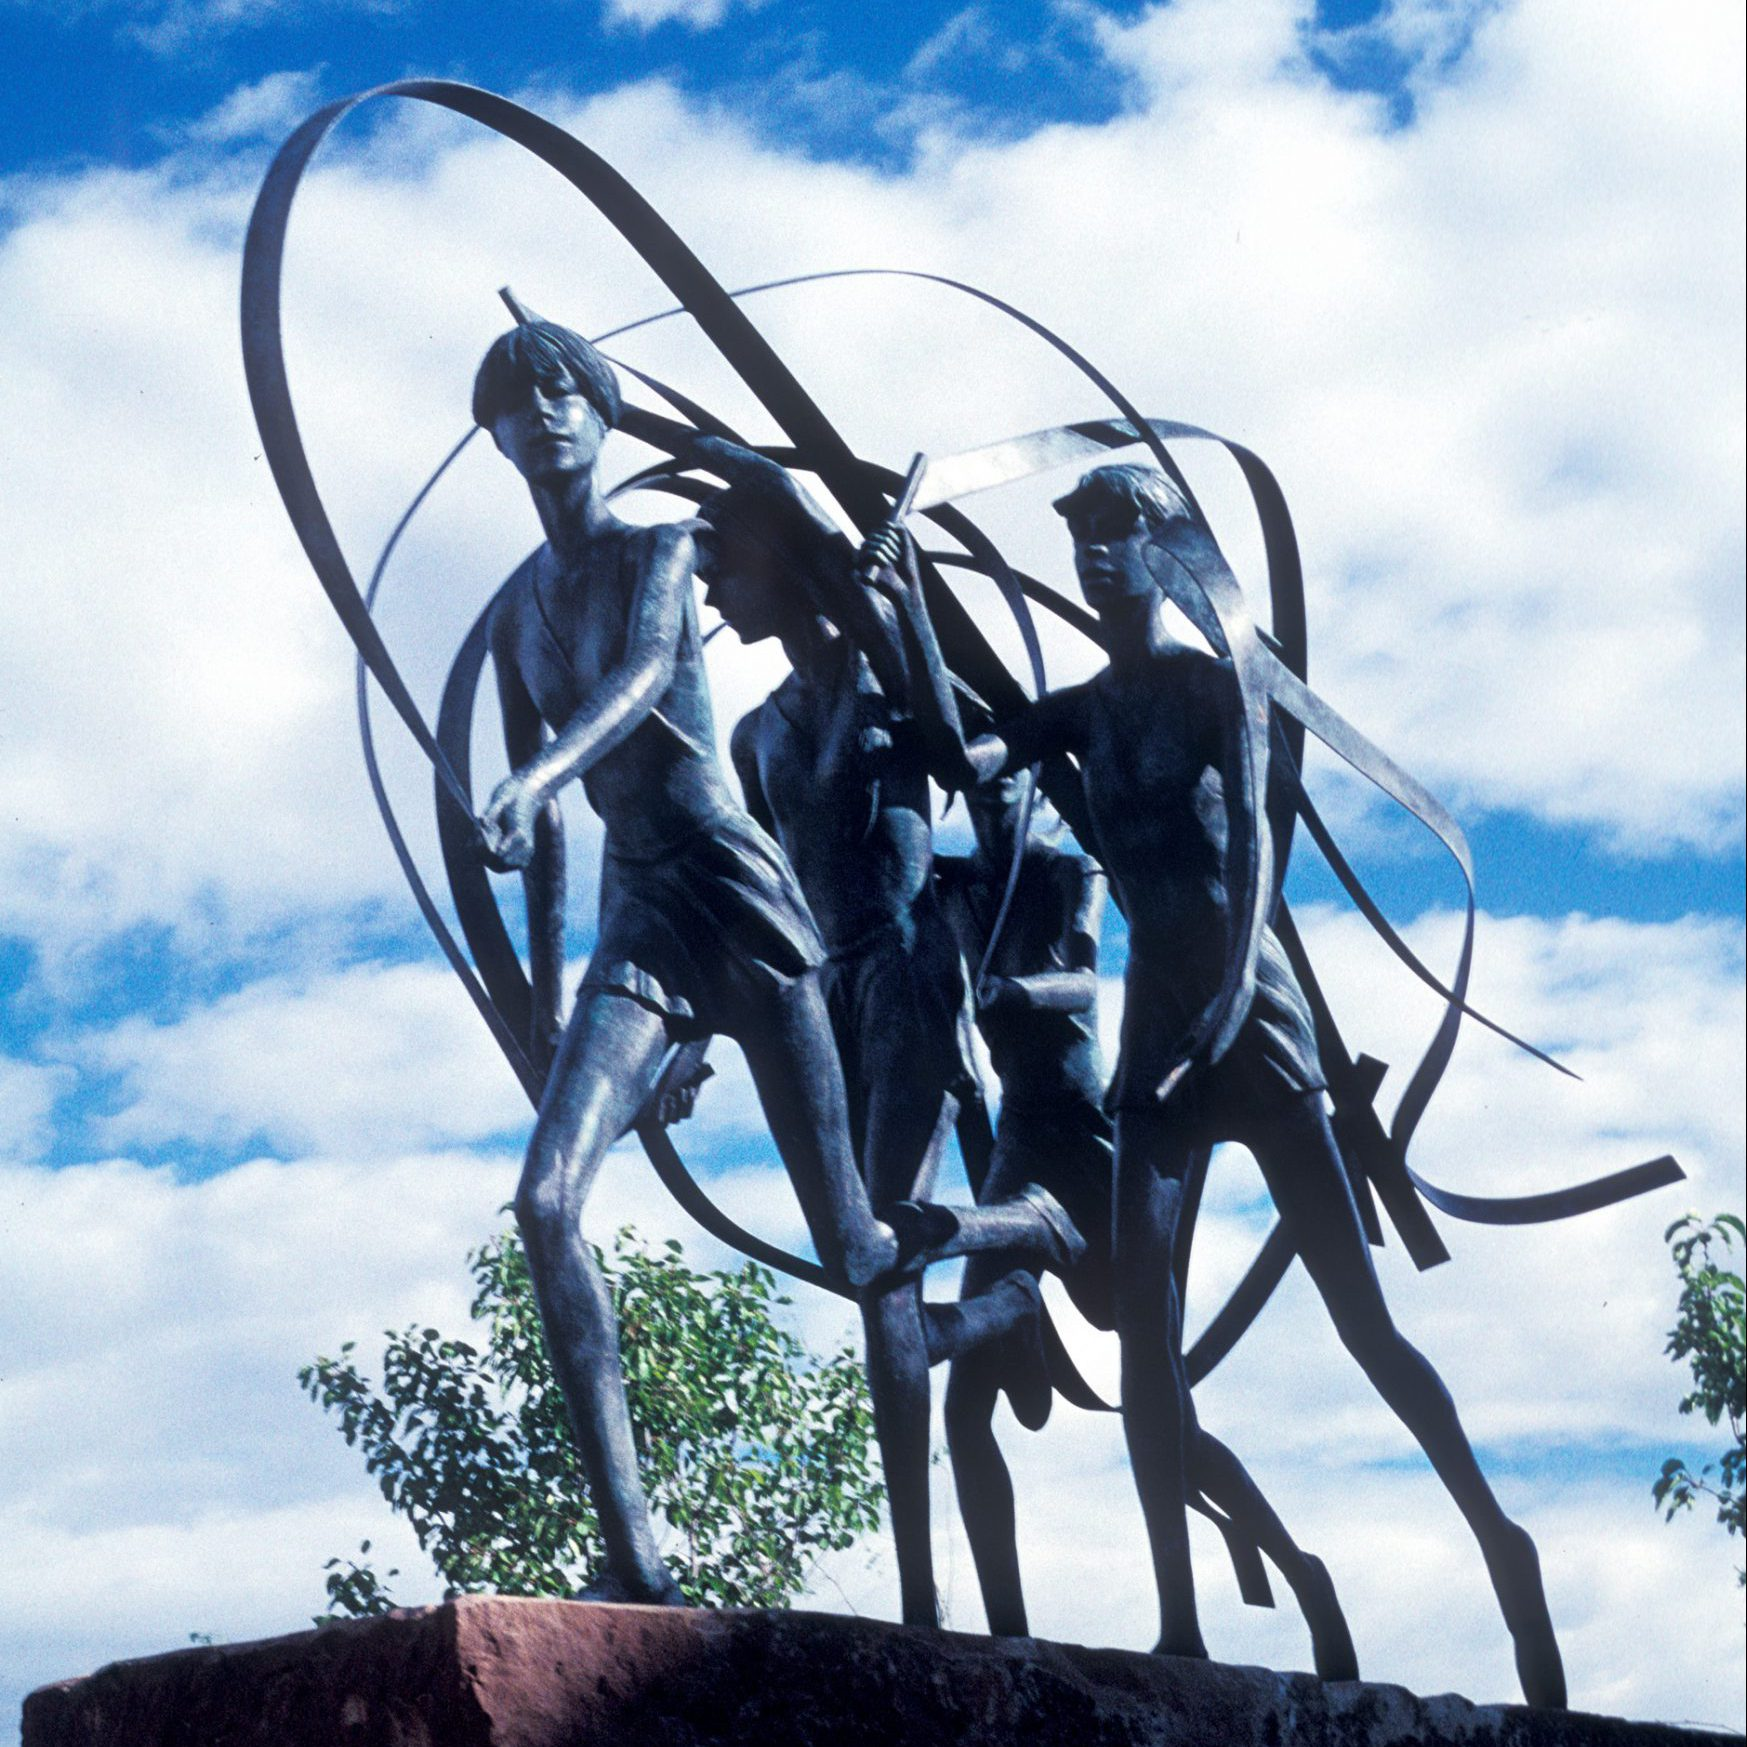 A metal sculpture of four people dancing and twirling ribbons.